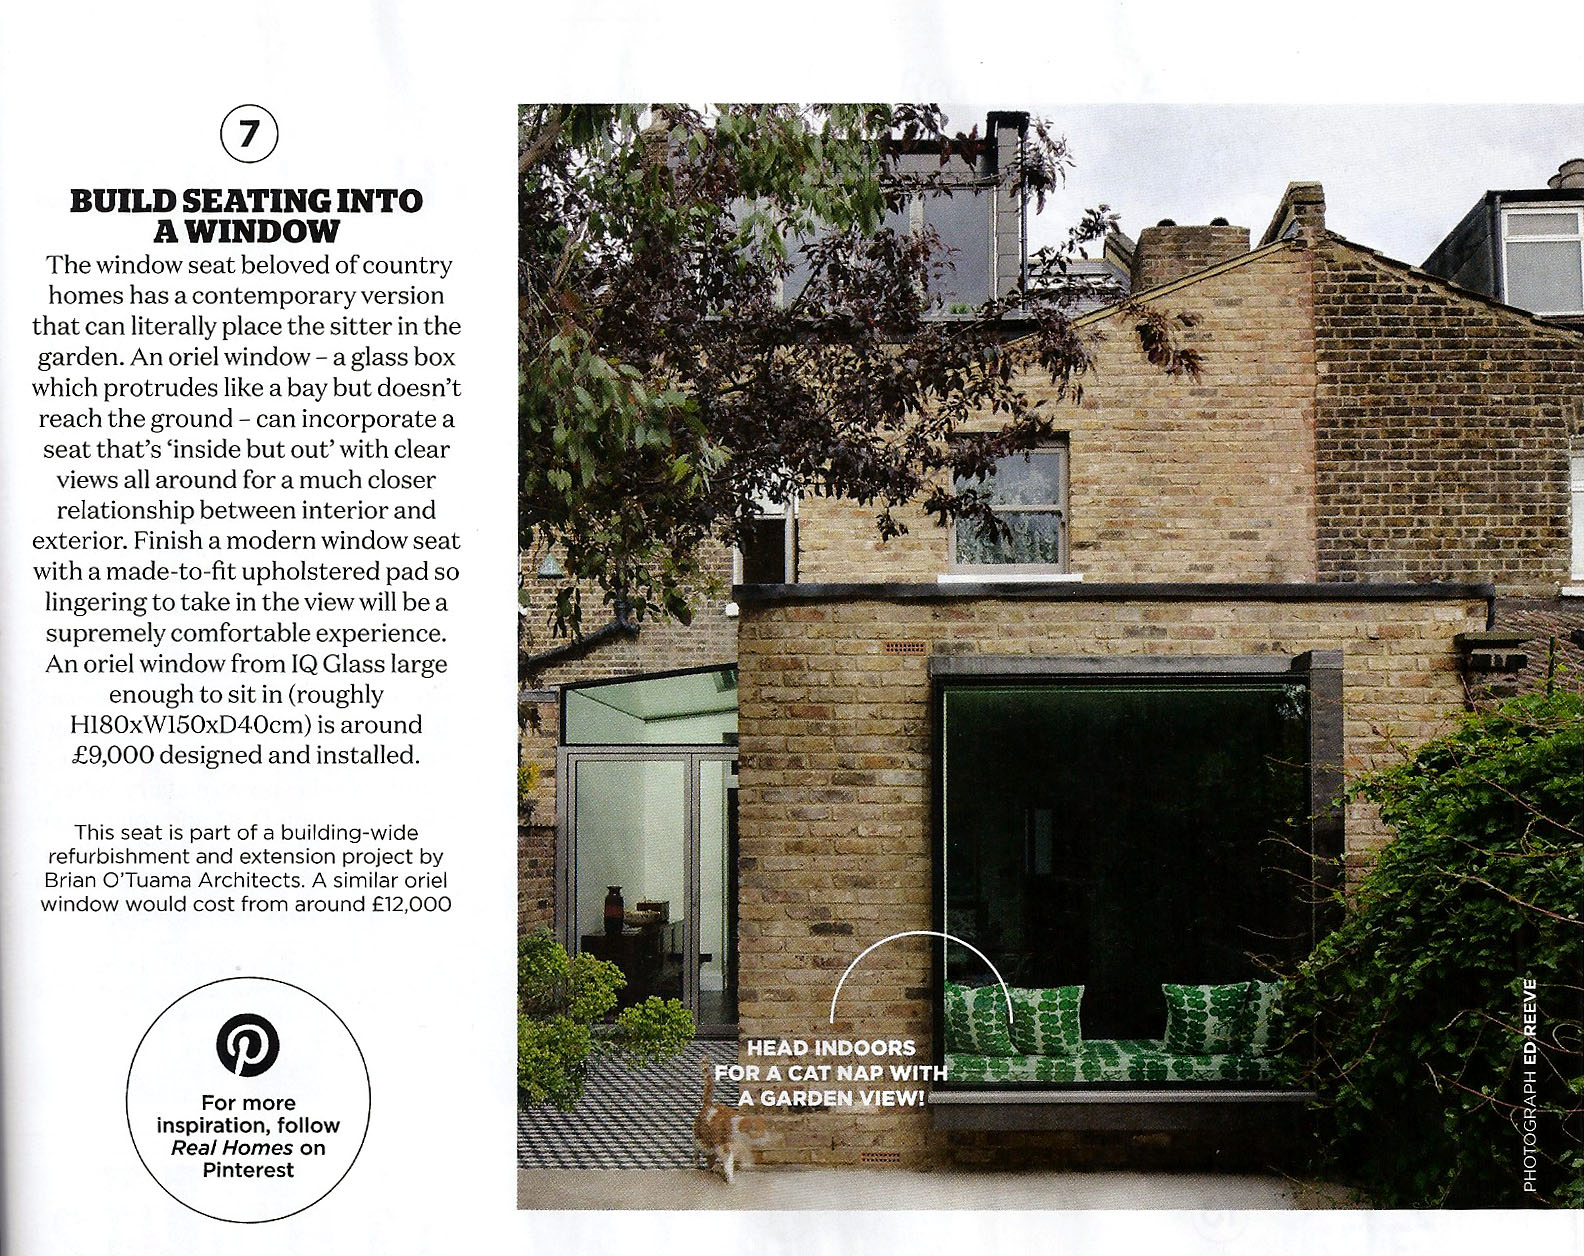 The oriel window from one of our London Fields projects is featured in the July issue of Real Homes